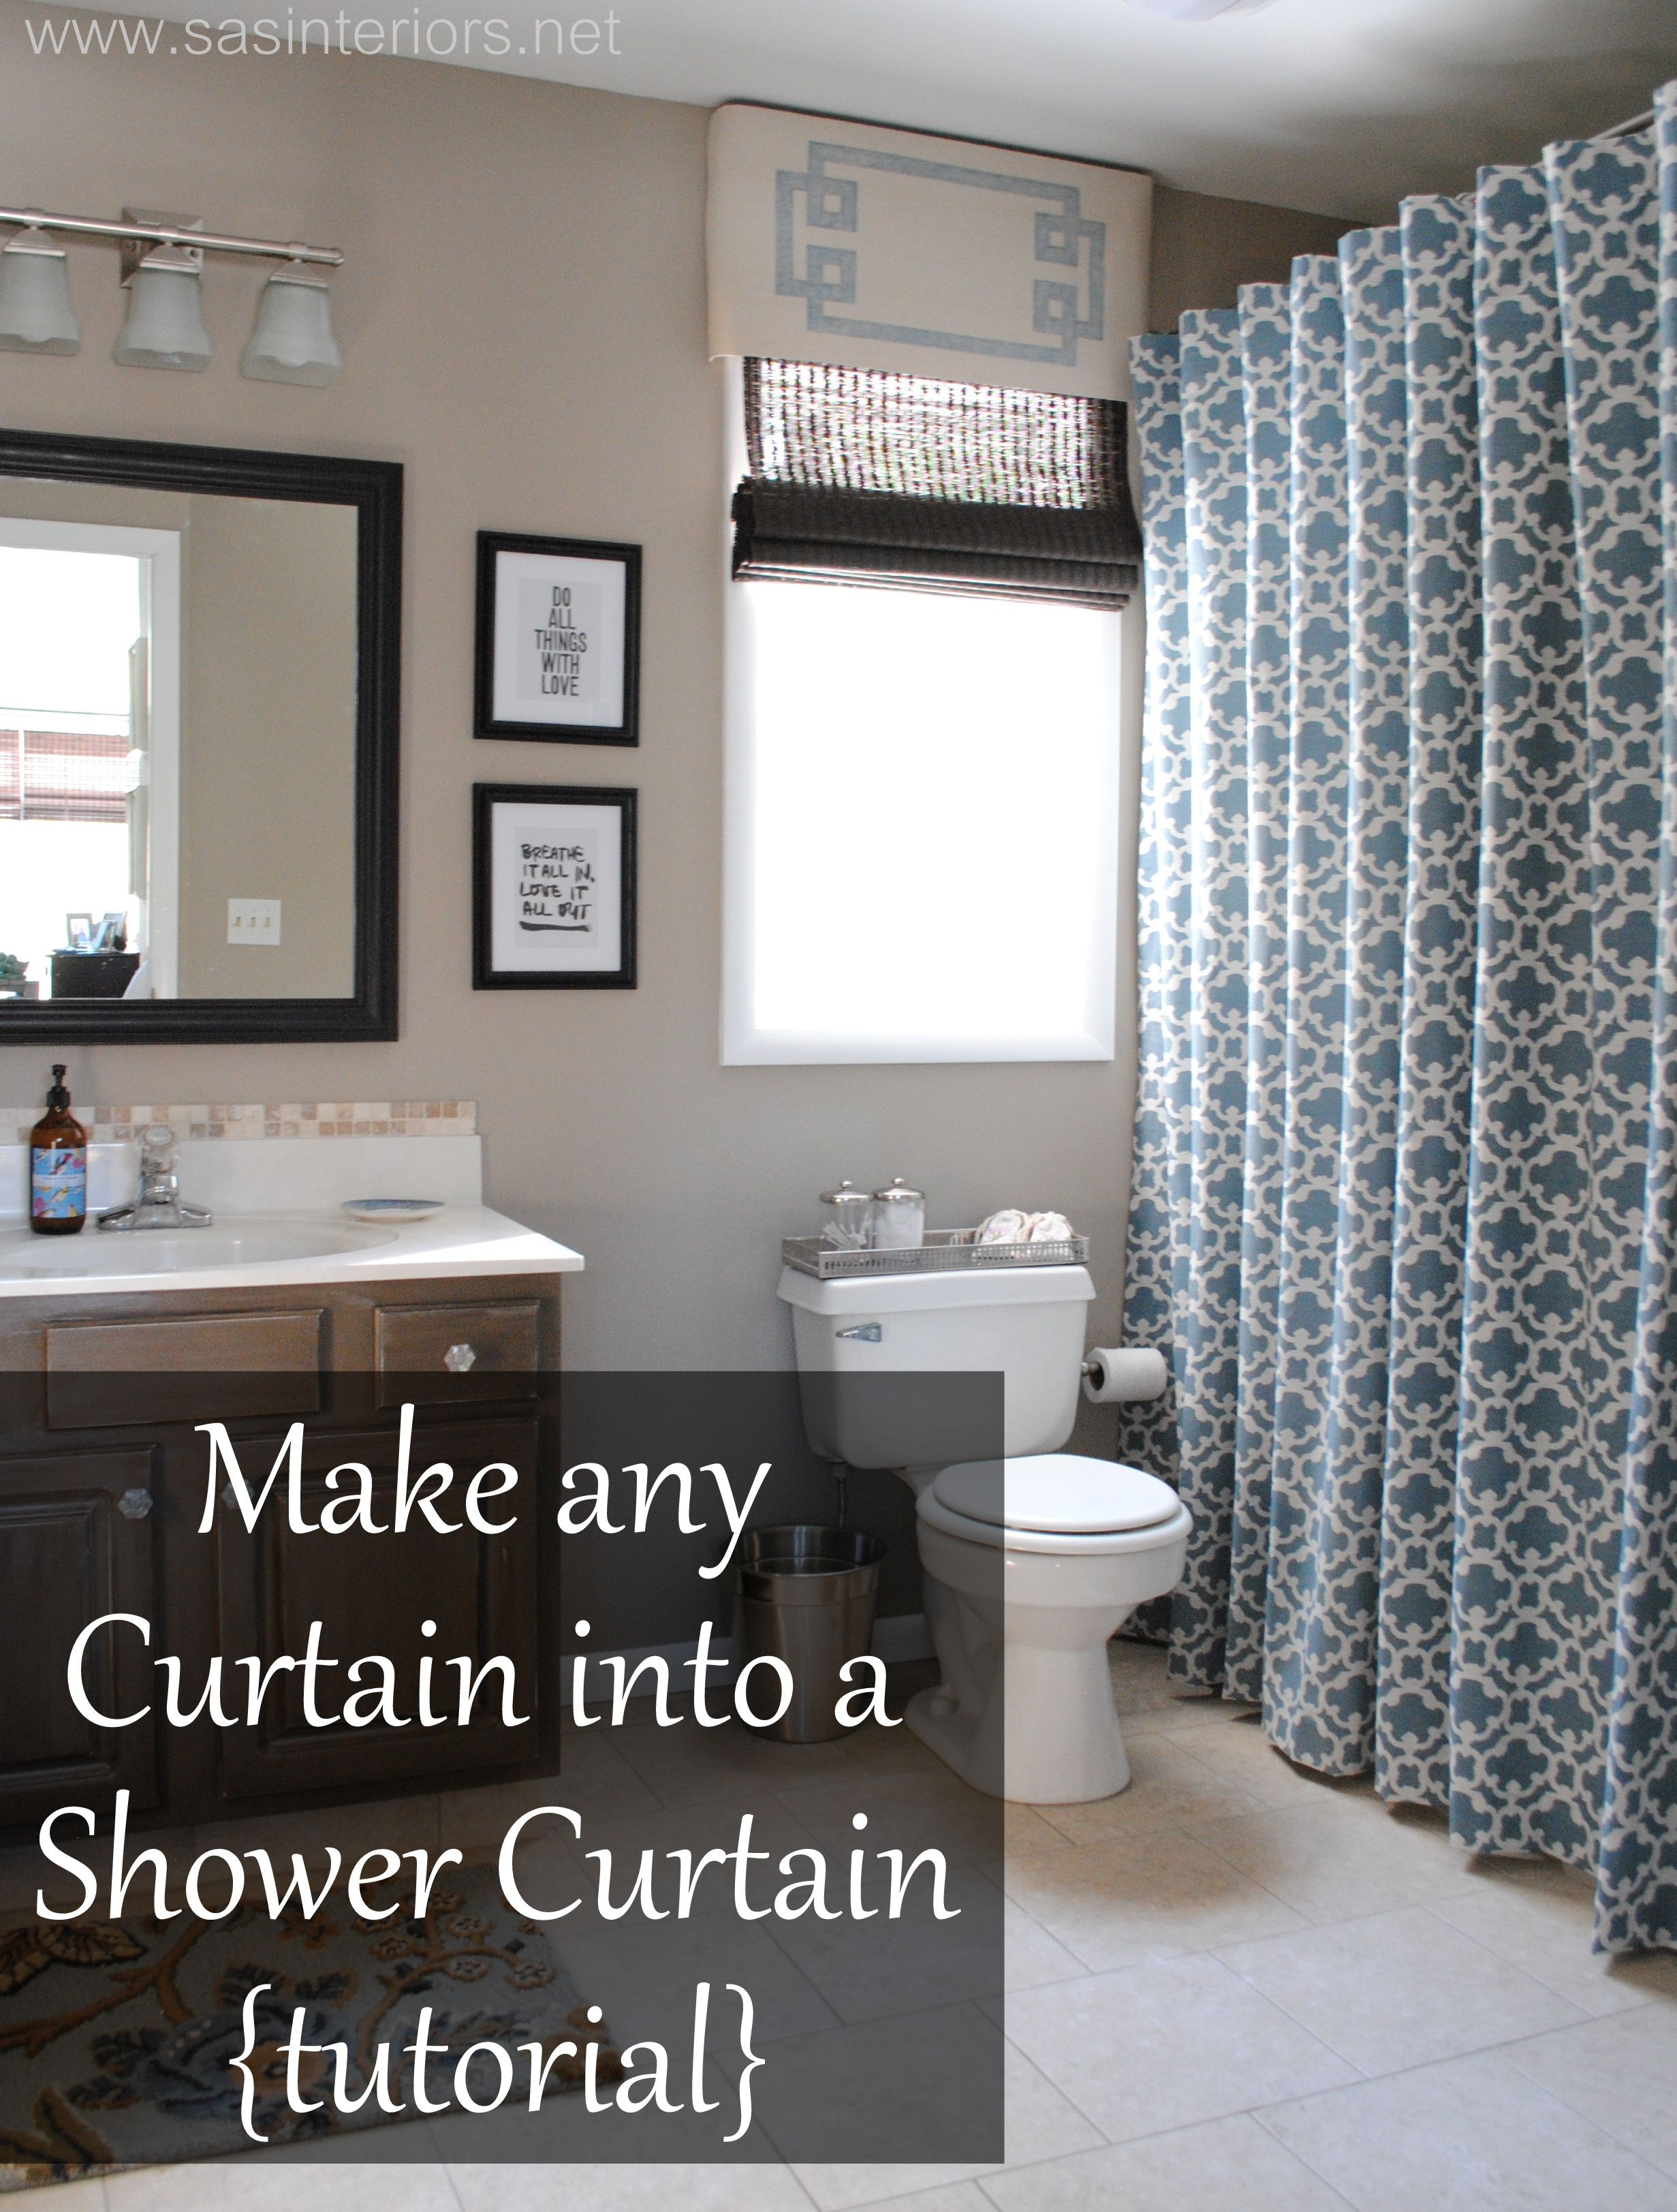 How To Make Any Curtain Into A Shower Curtain Home Diy Curtains